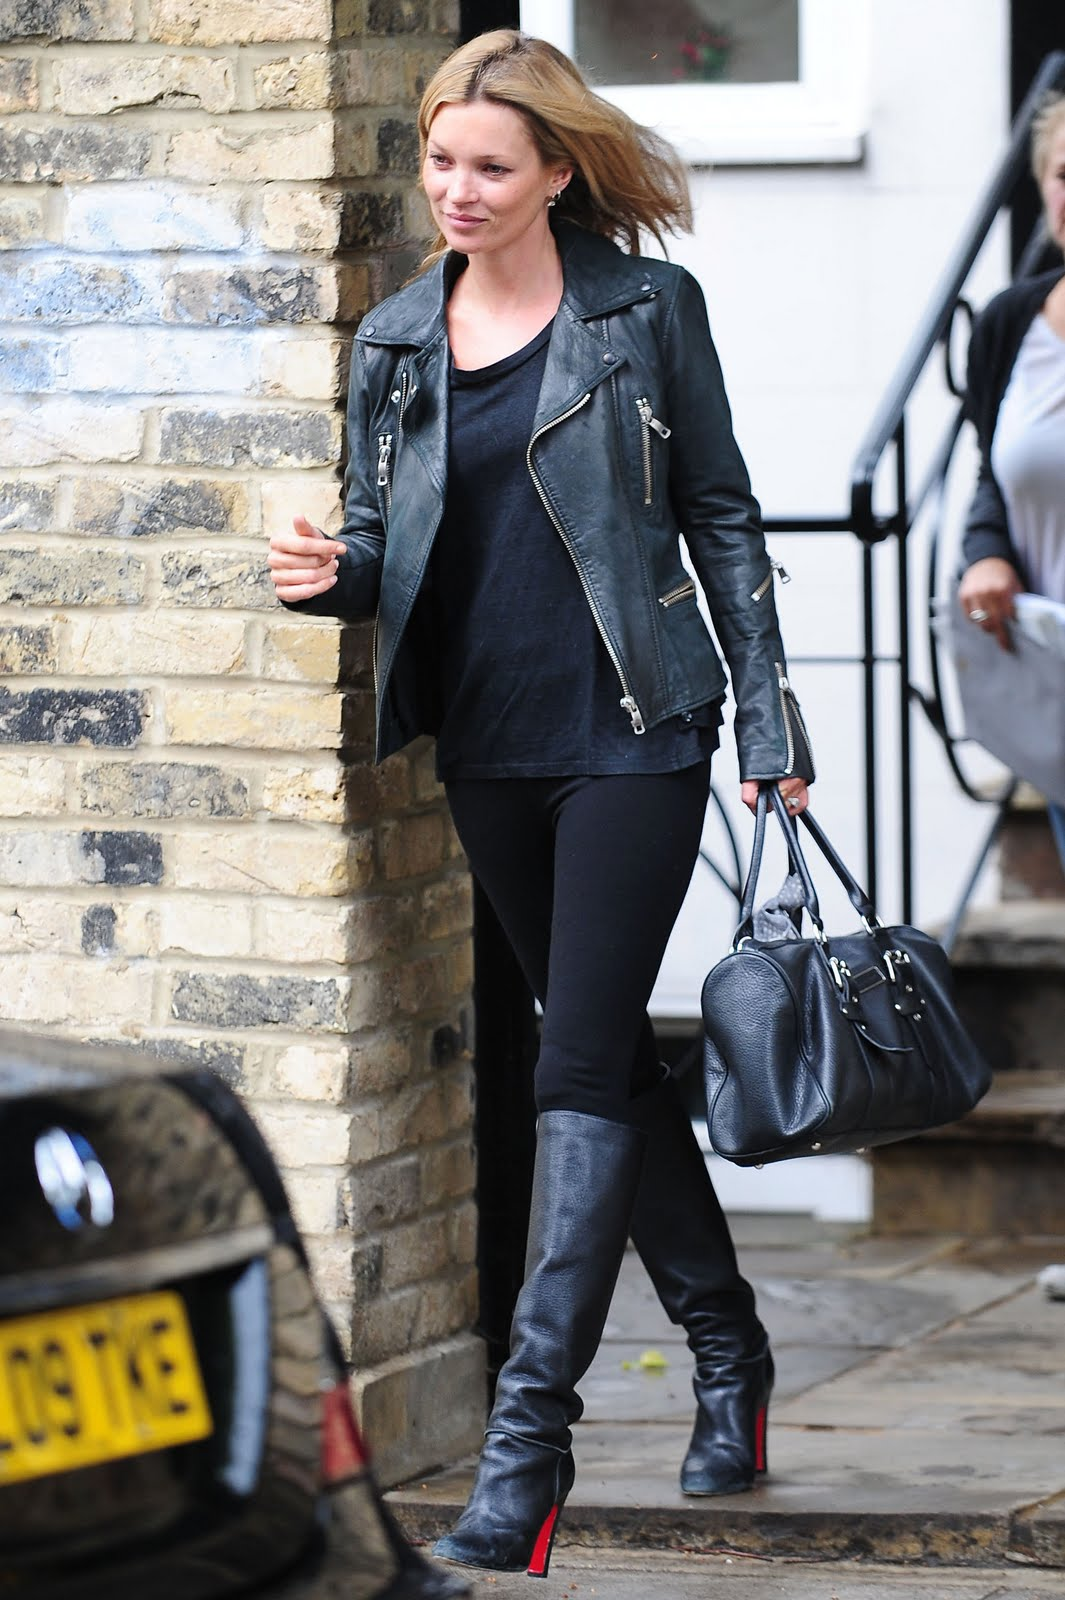 http://1.bp.blogspot.com/-nC34rHOSKwY/TeAcJ_cGNgI/AAAAAAAADSw/CRvS-6bRwb4/s1600/88858_Kate_Moss_out_and_about_in_London_England_May_26_2011_018_122_507lo.jpg